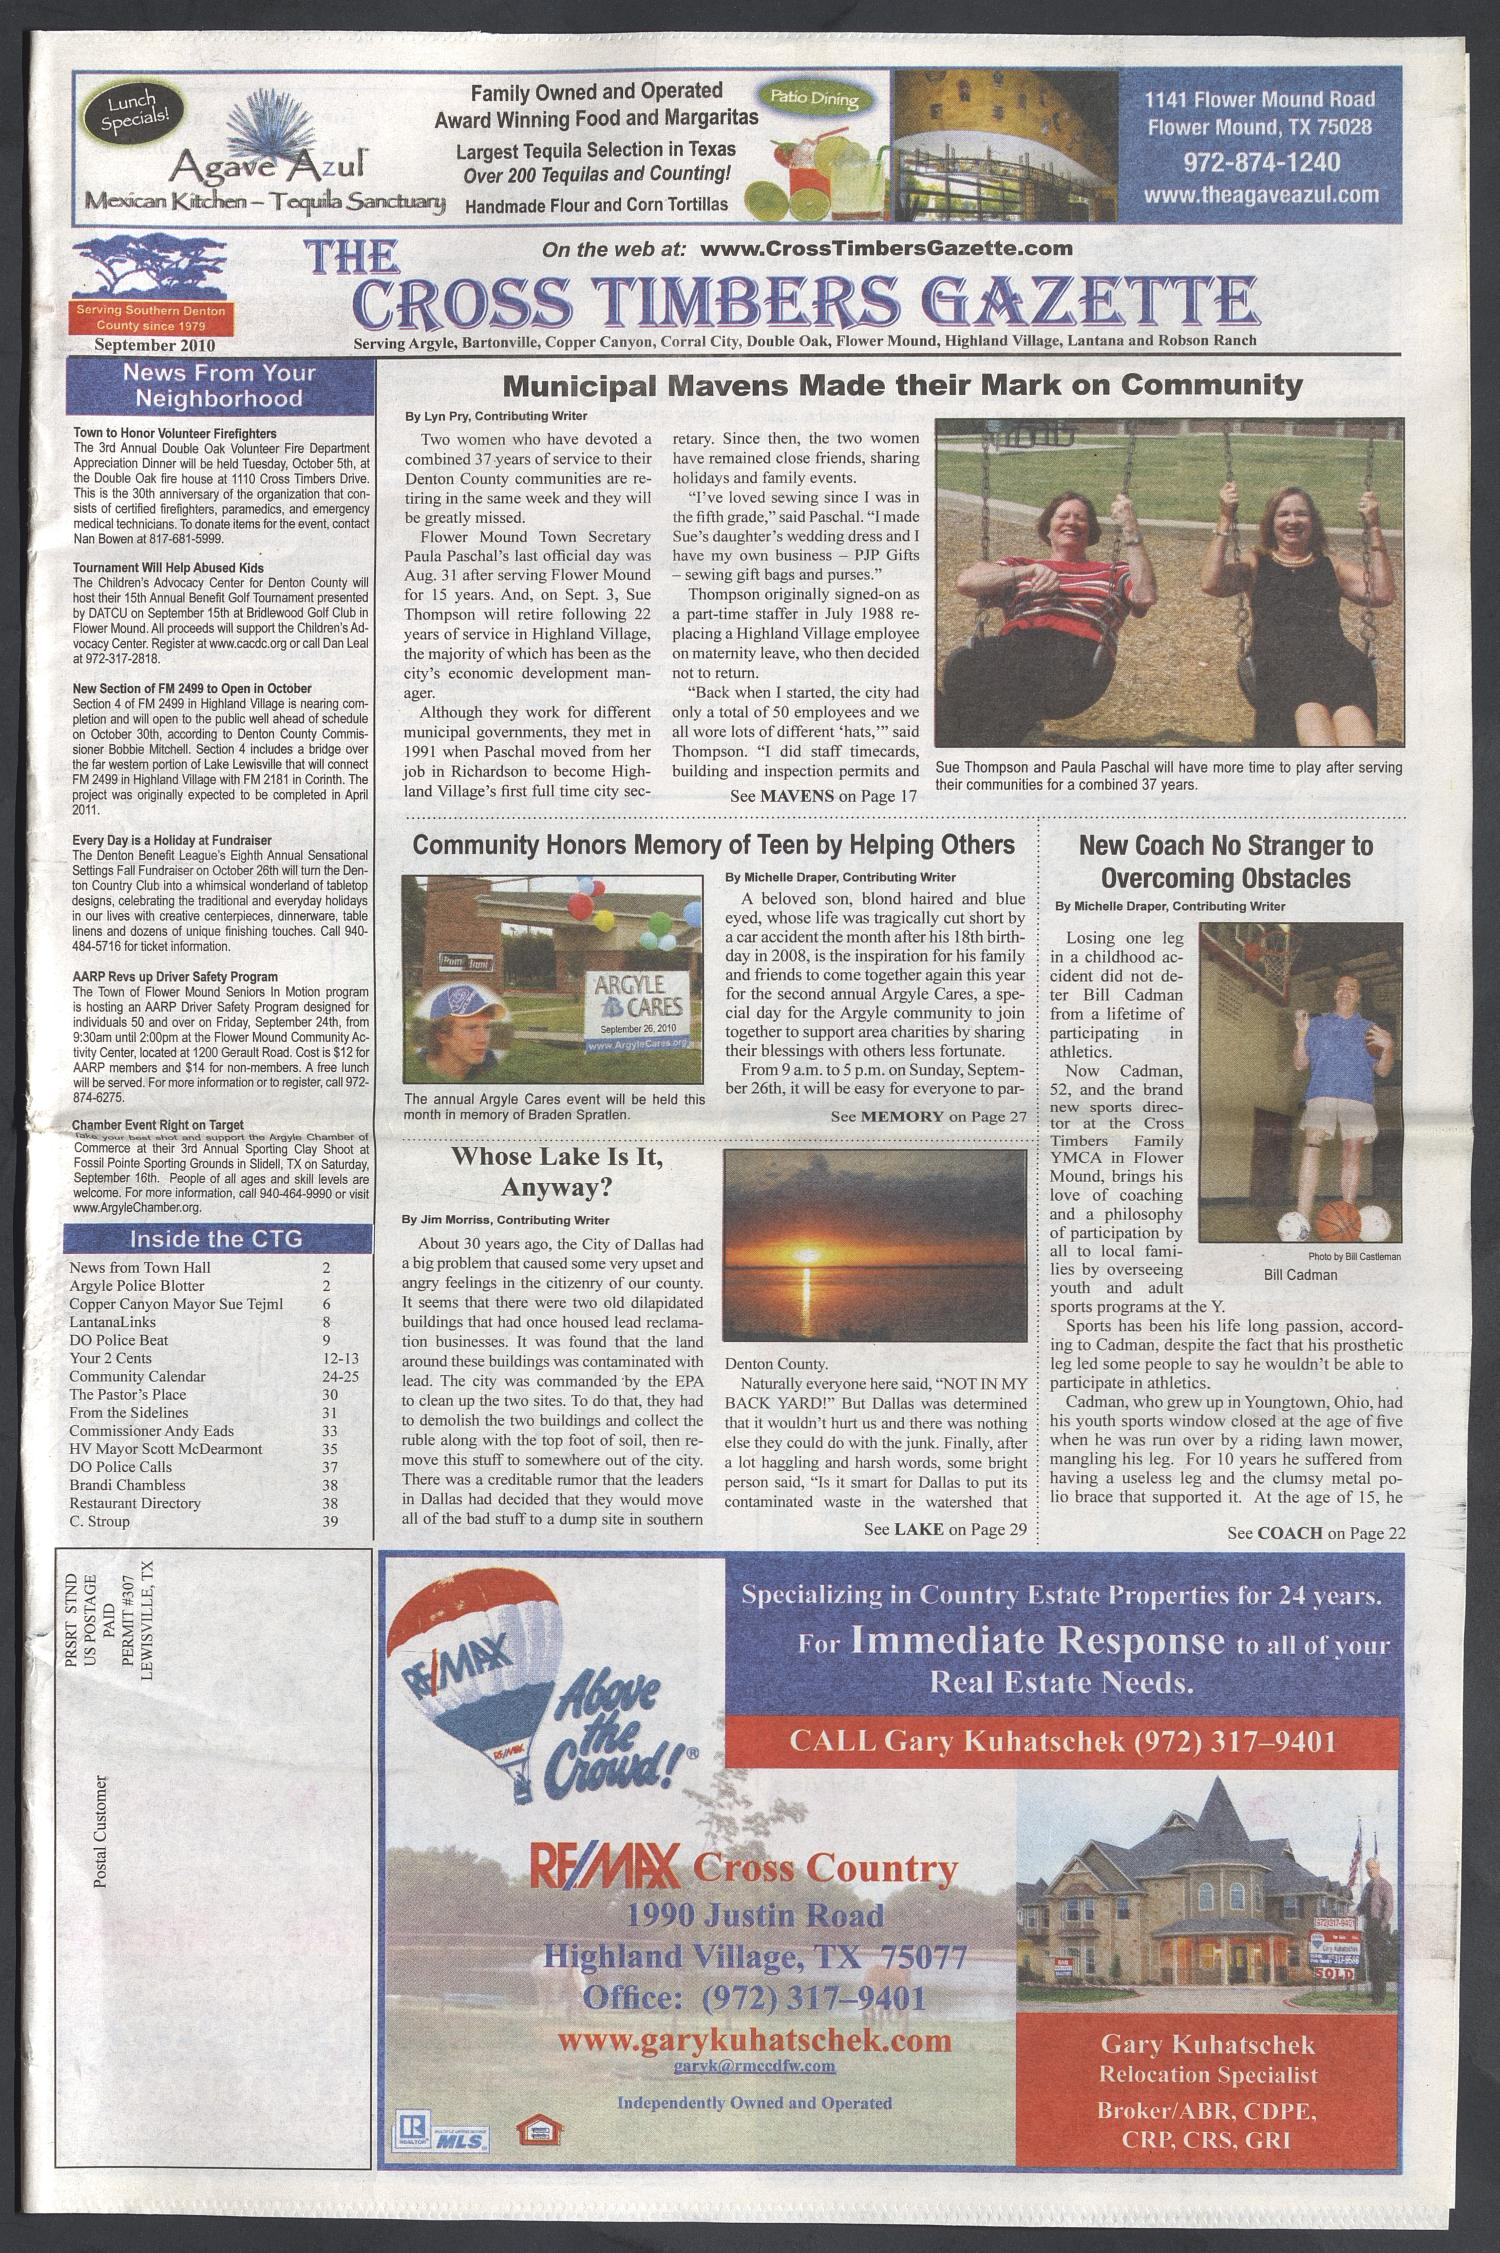 The Cross Timbers Gazette (Flower Mound, Tex ), Ed  1, September